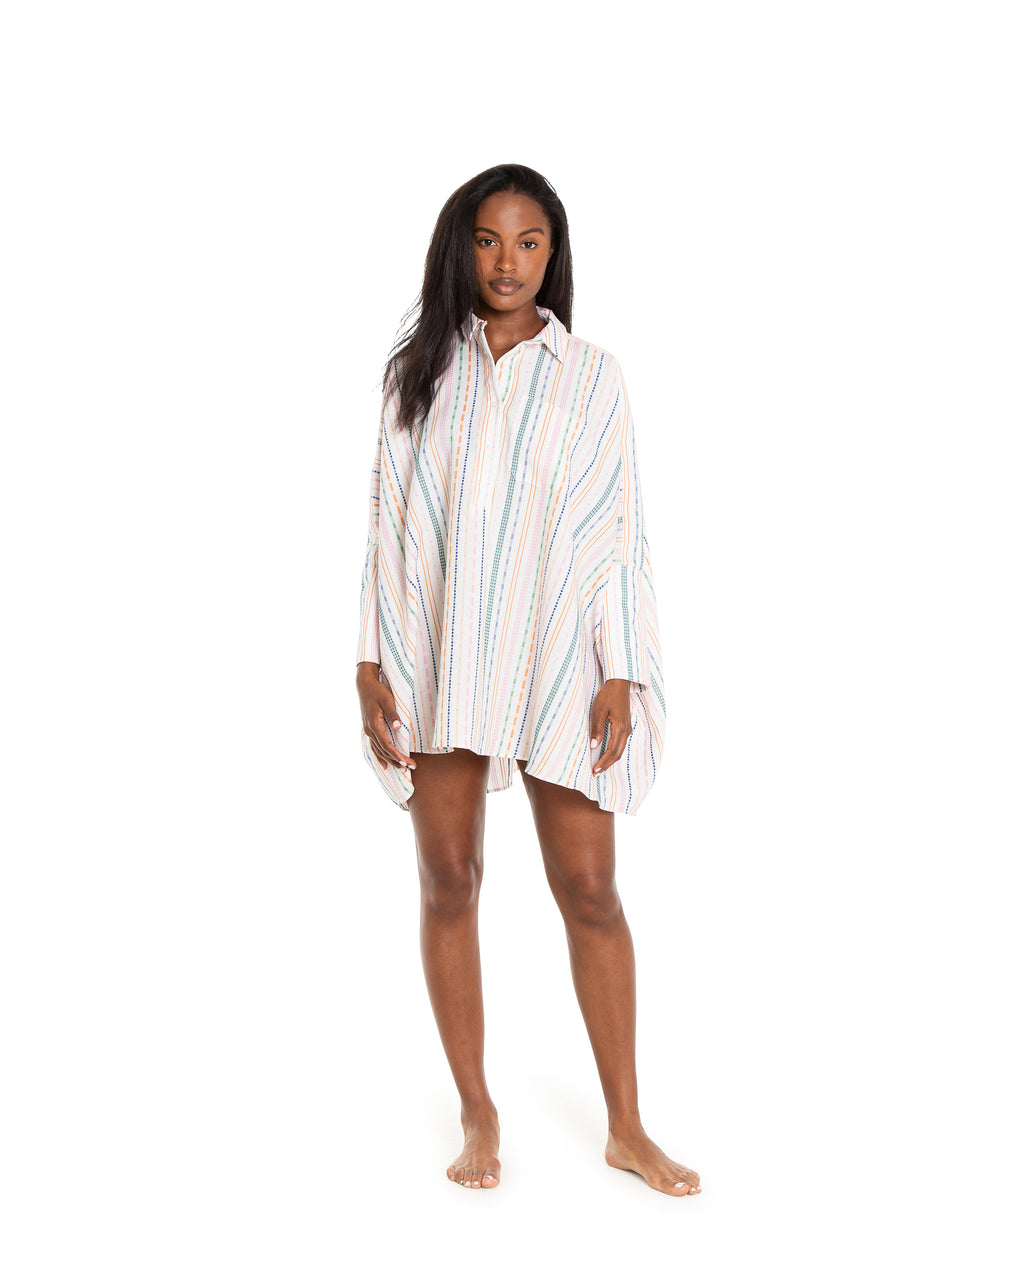 no. 1044 embroidered striped oversized shirt